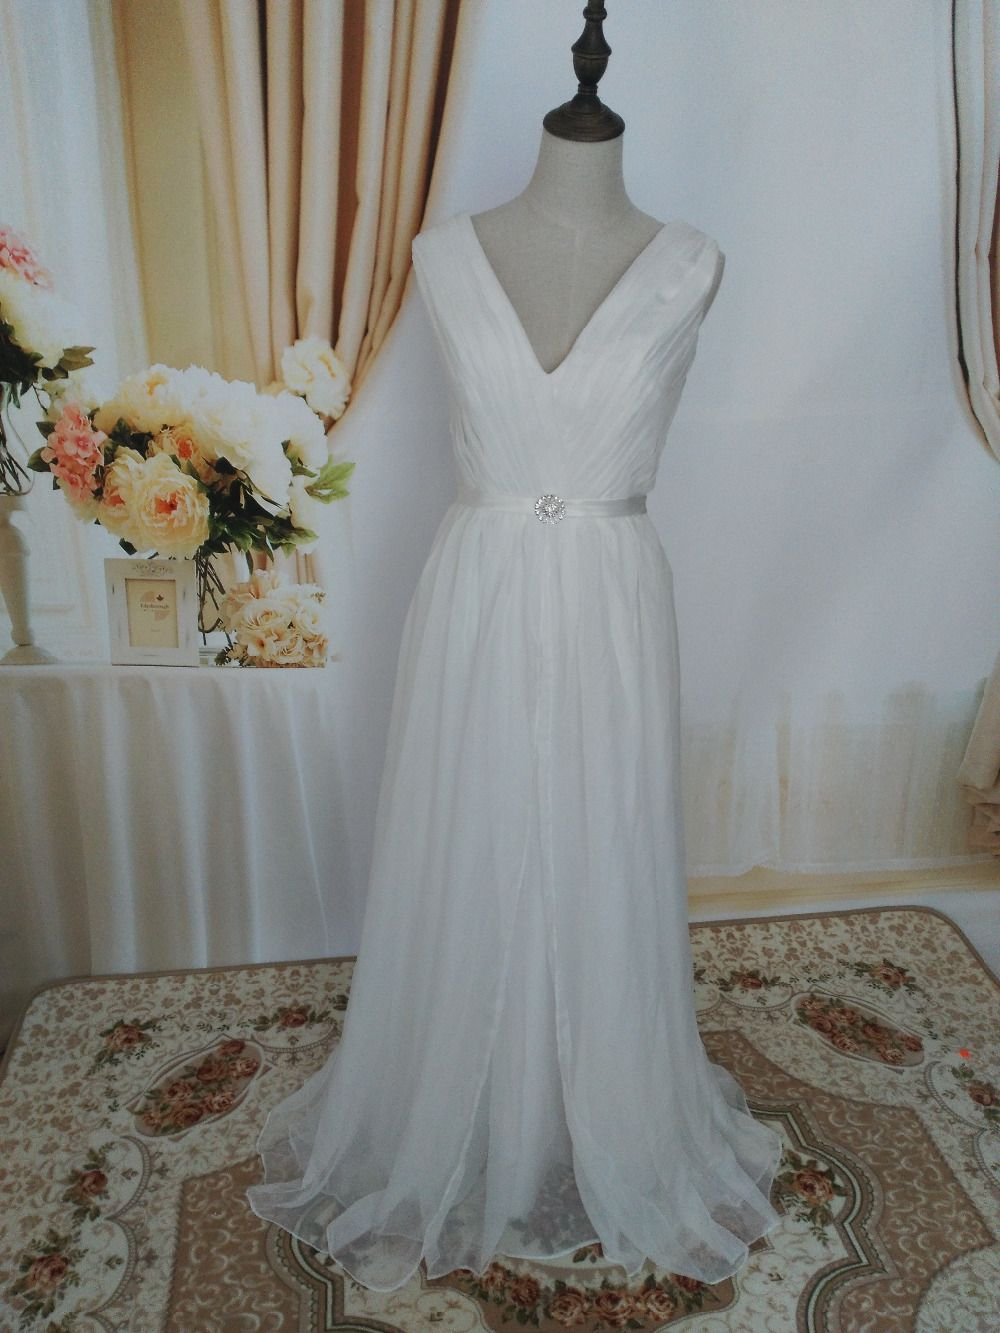 Size 20 dress for wedding  ZJ custom White Ivory Crystal Beads Wedding Dresses for brides